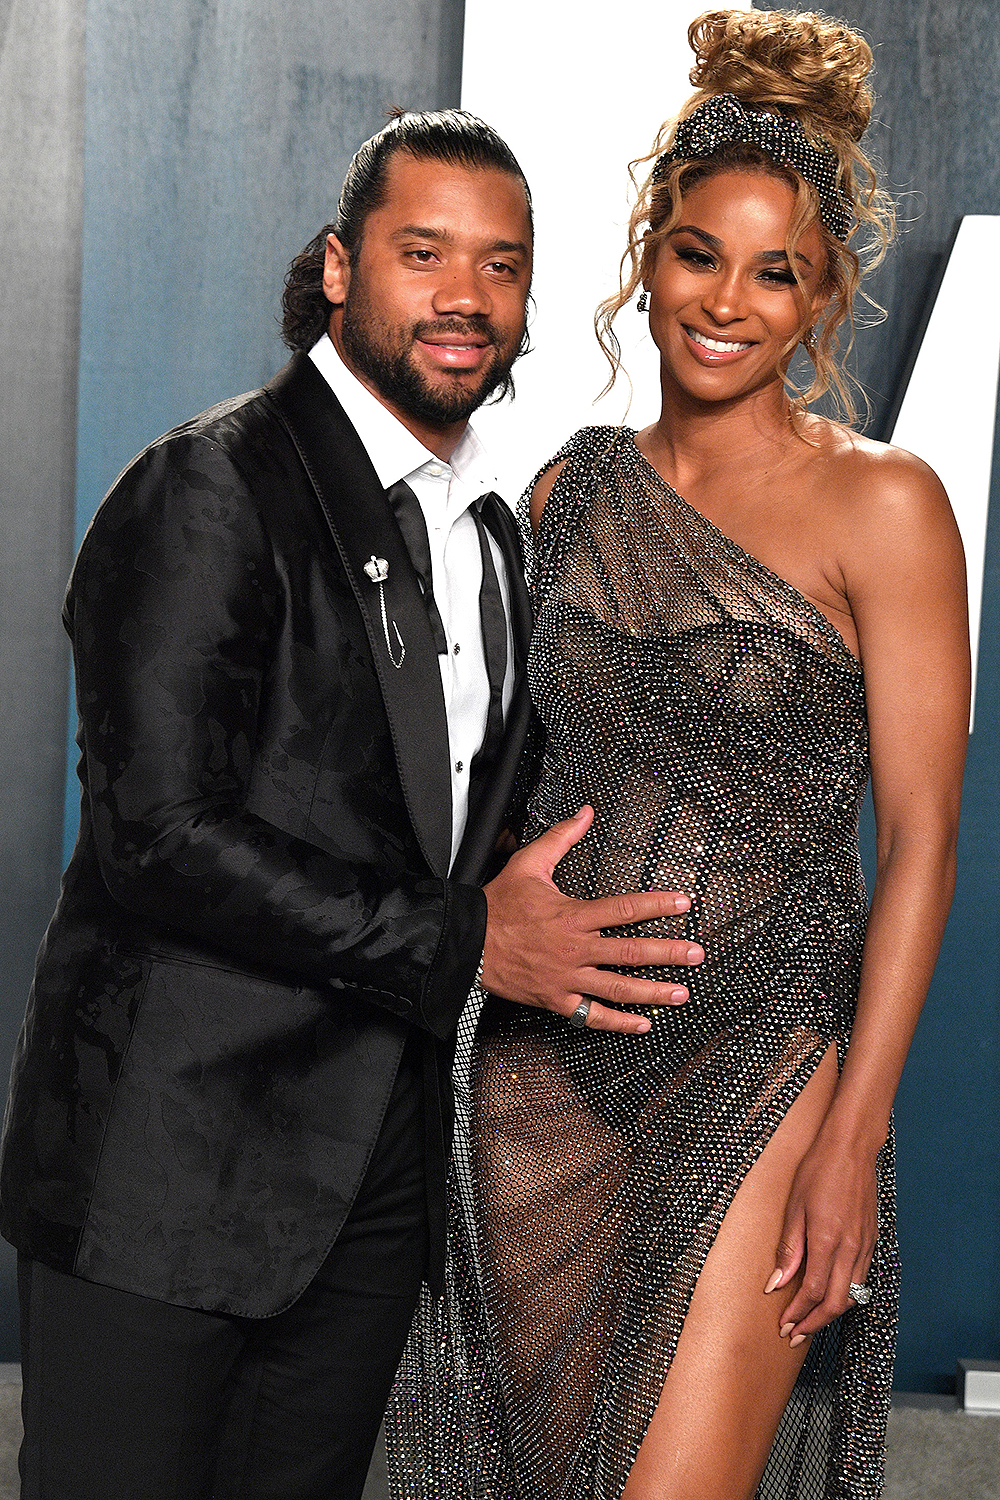 Russell Wilson and Ciara Wilson